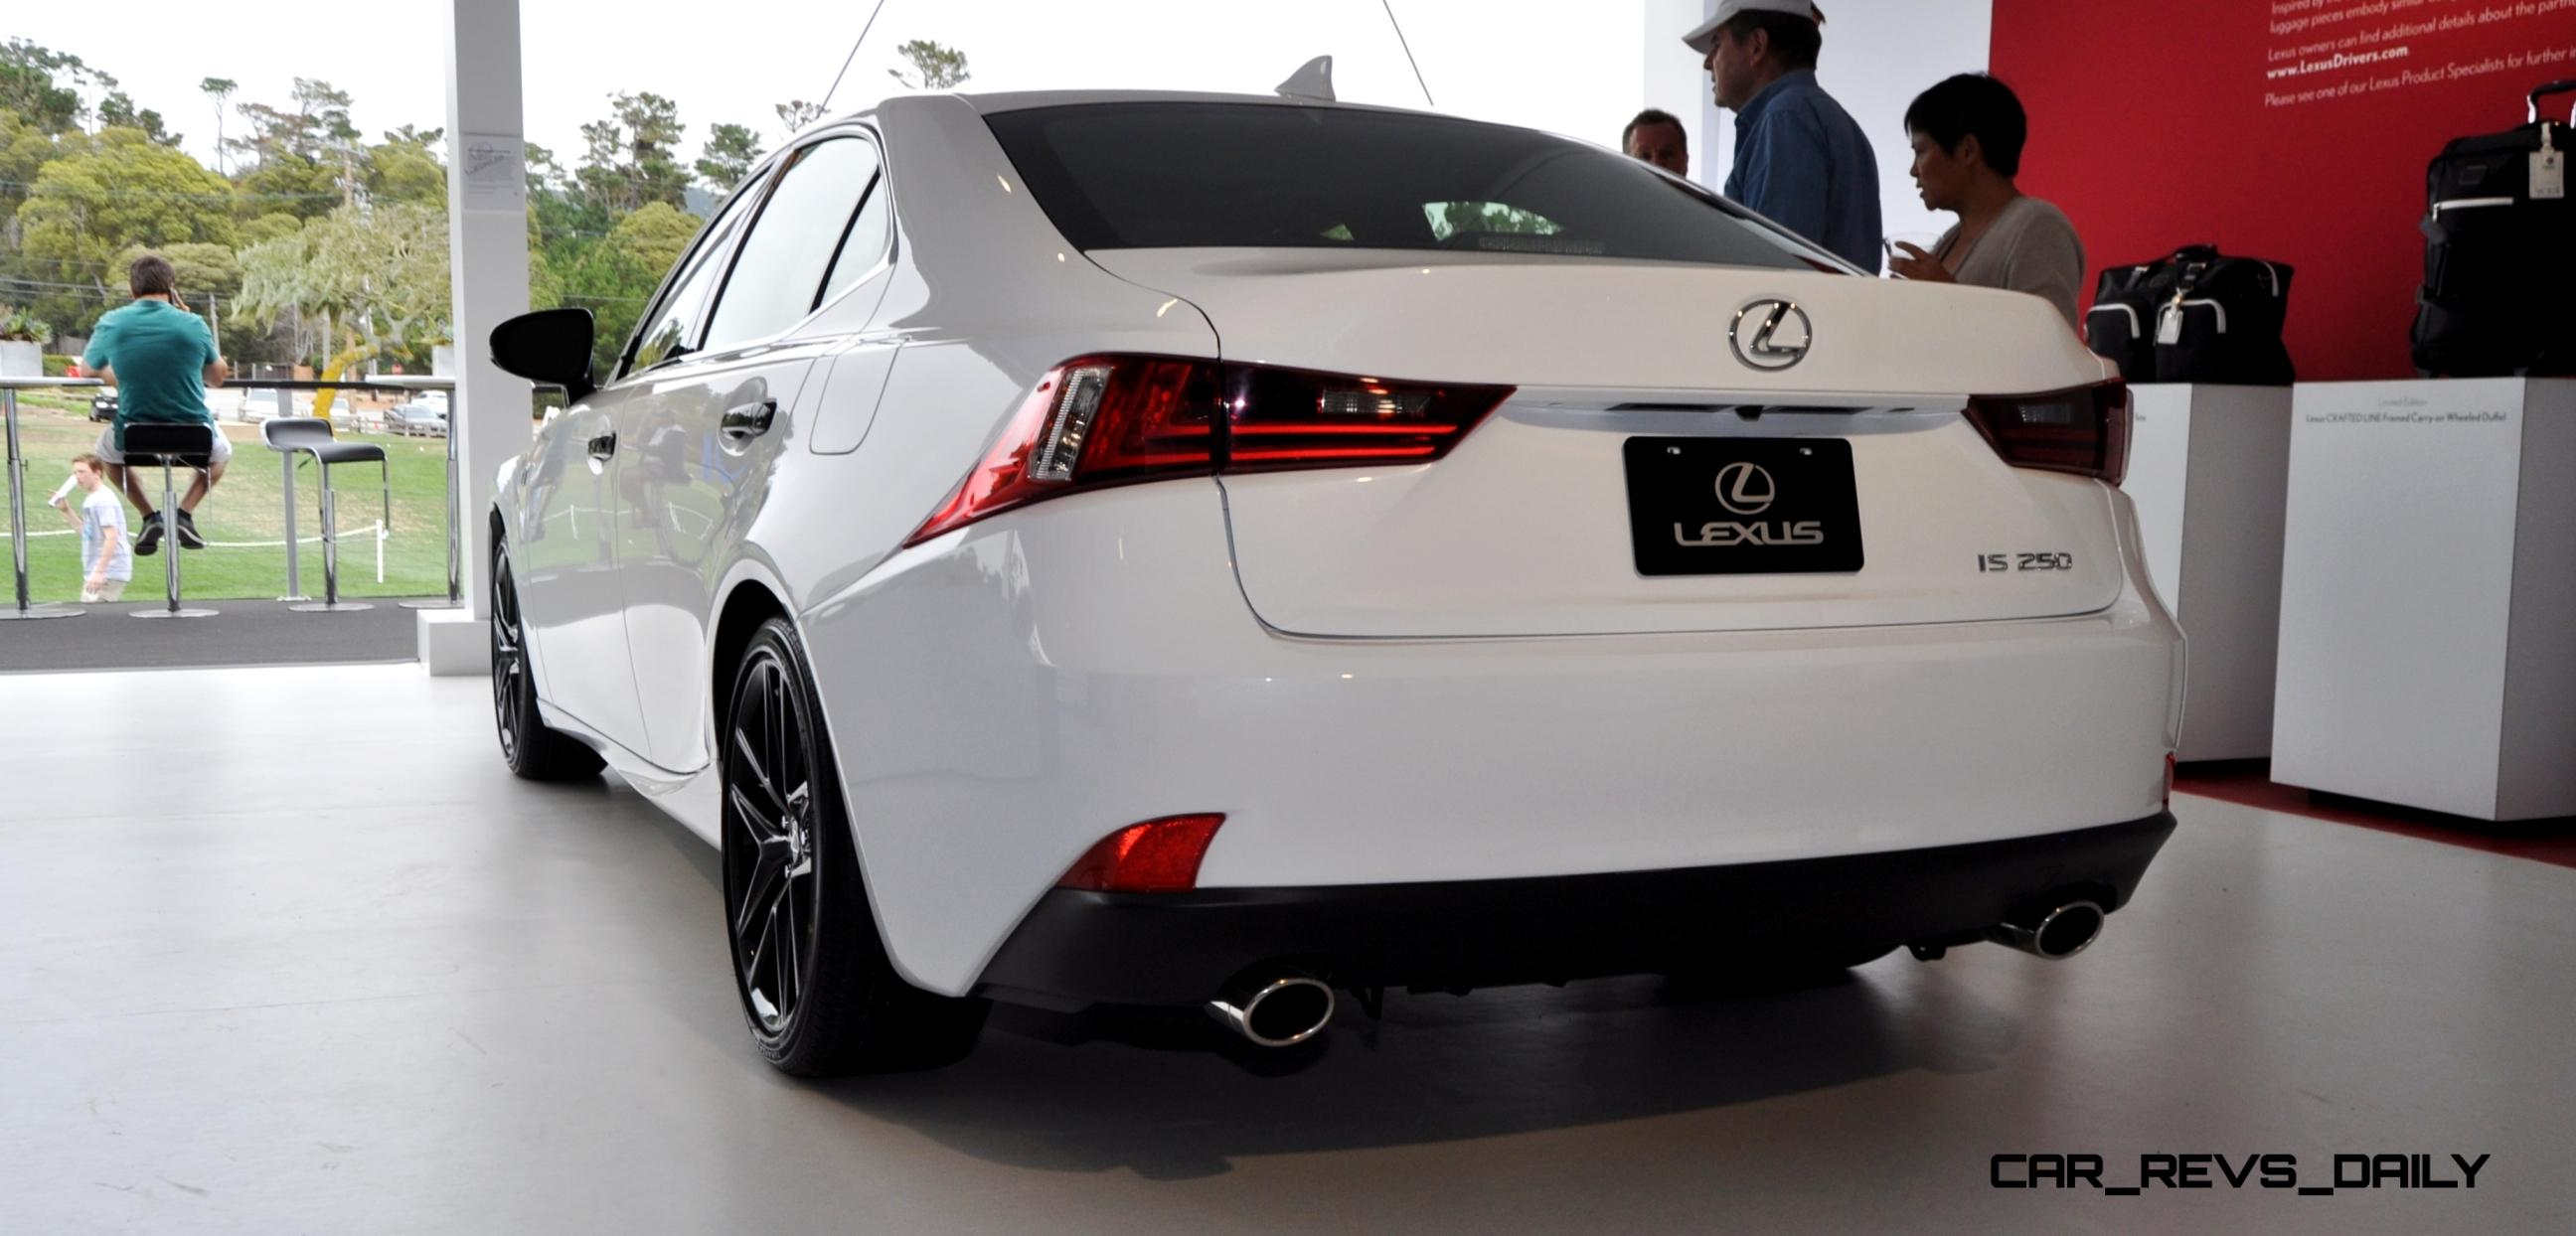 2015 Lexus IS250 F Sport CRAFTED LINE in 32 All New High Res s